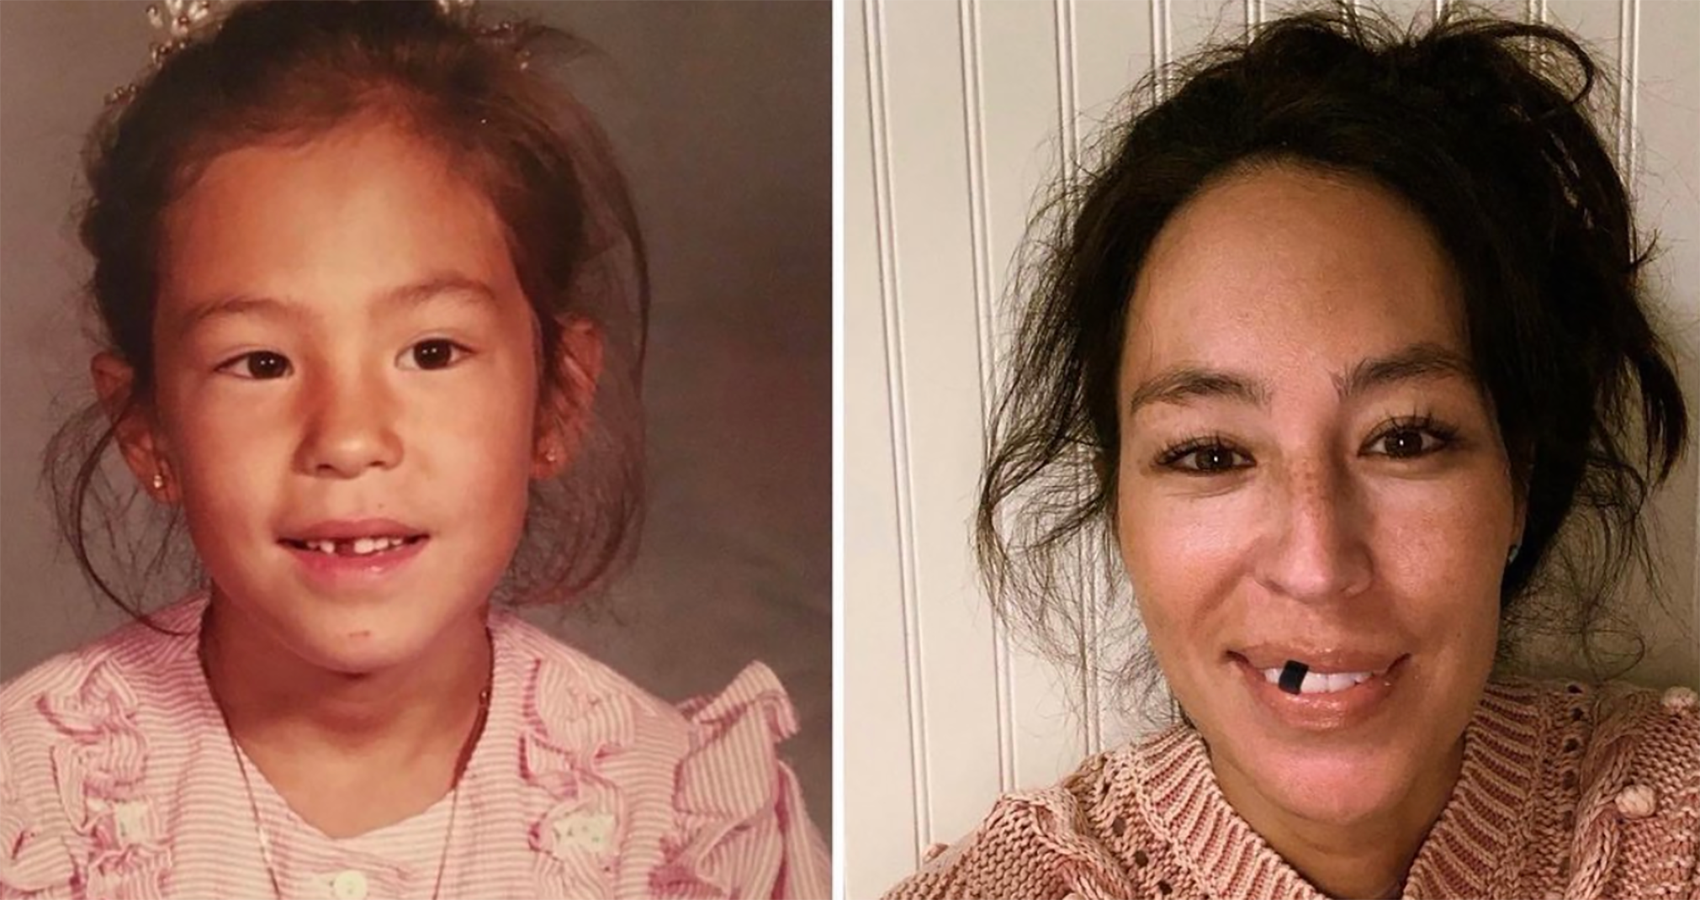 Joanna Gaines' Message To Her Younger Self   Moms.com